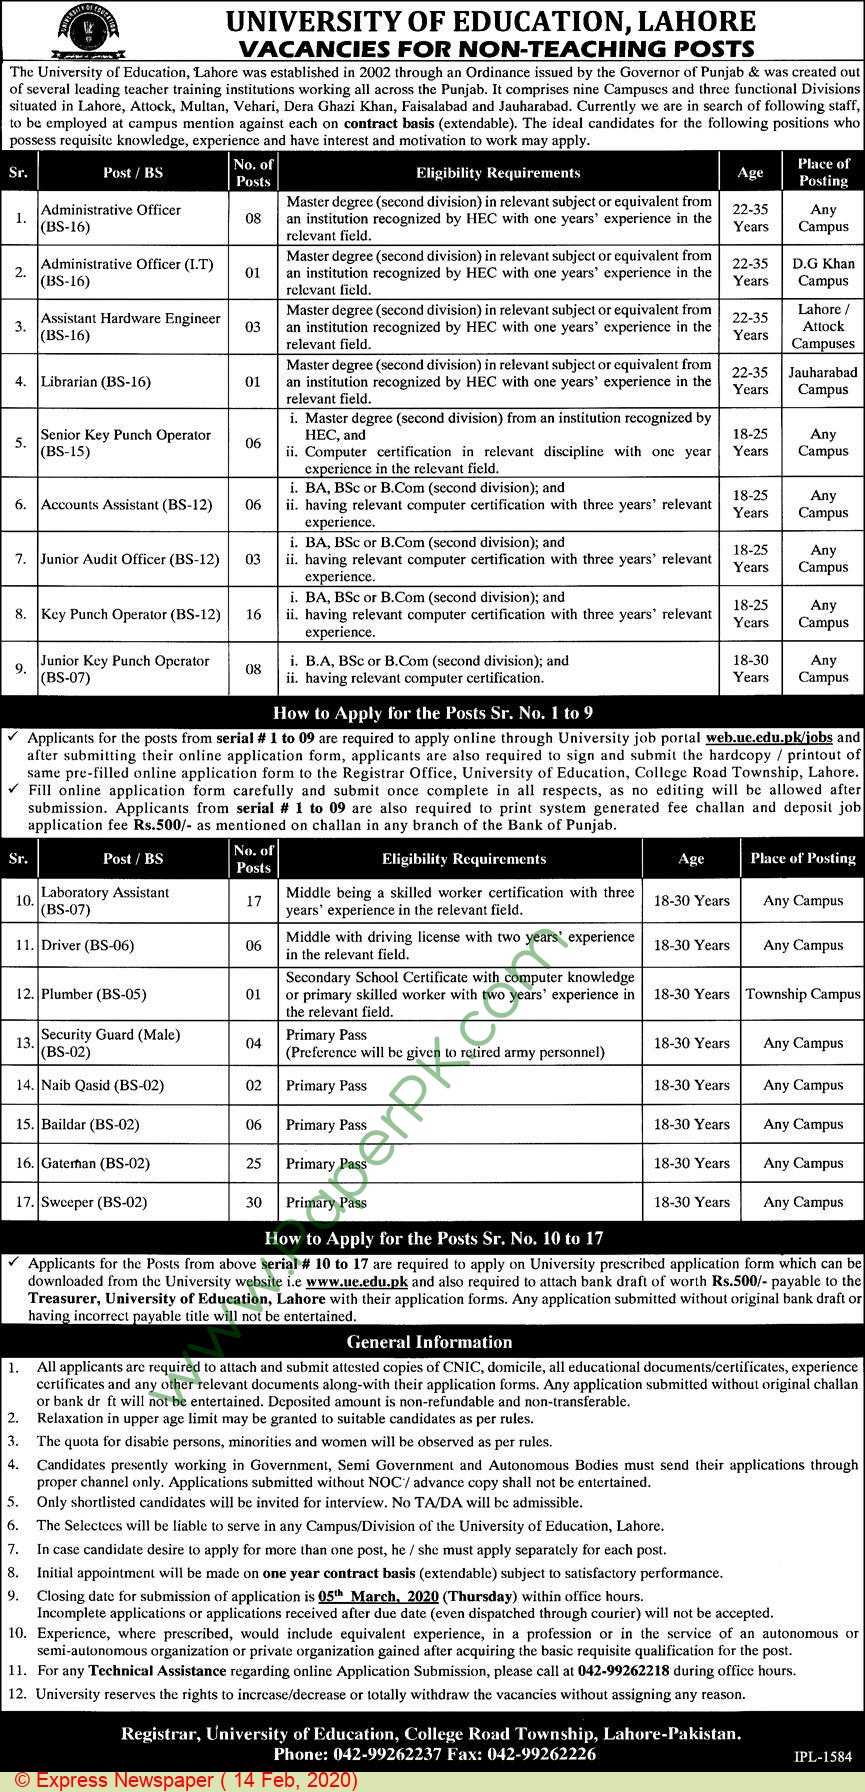 University Of Education jobs newspaper ad for Naib Qasid in Lahore